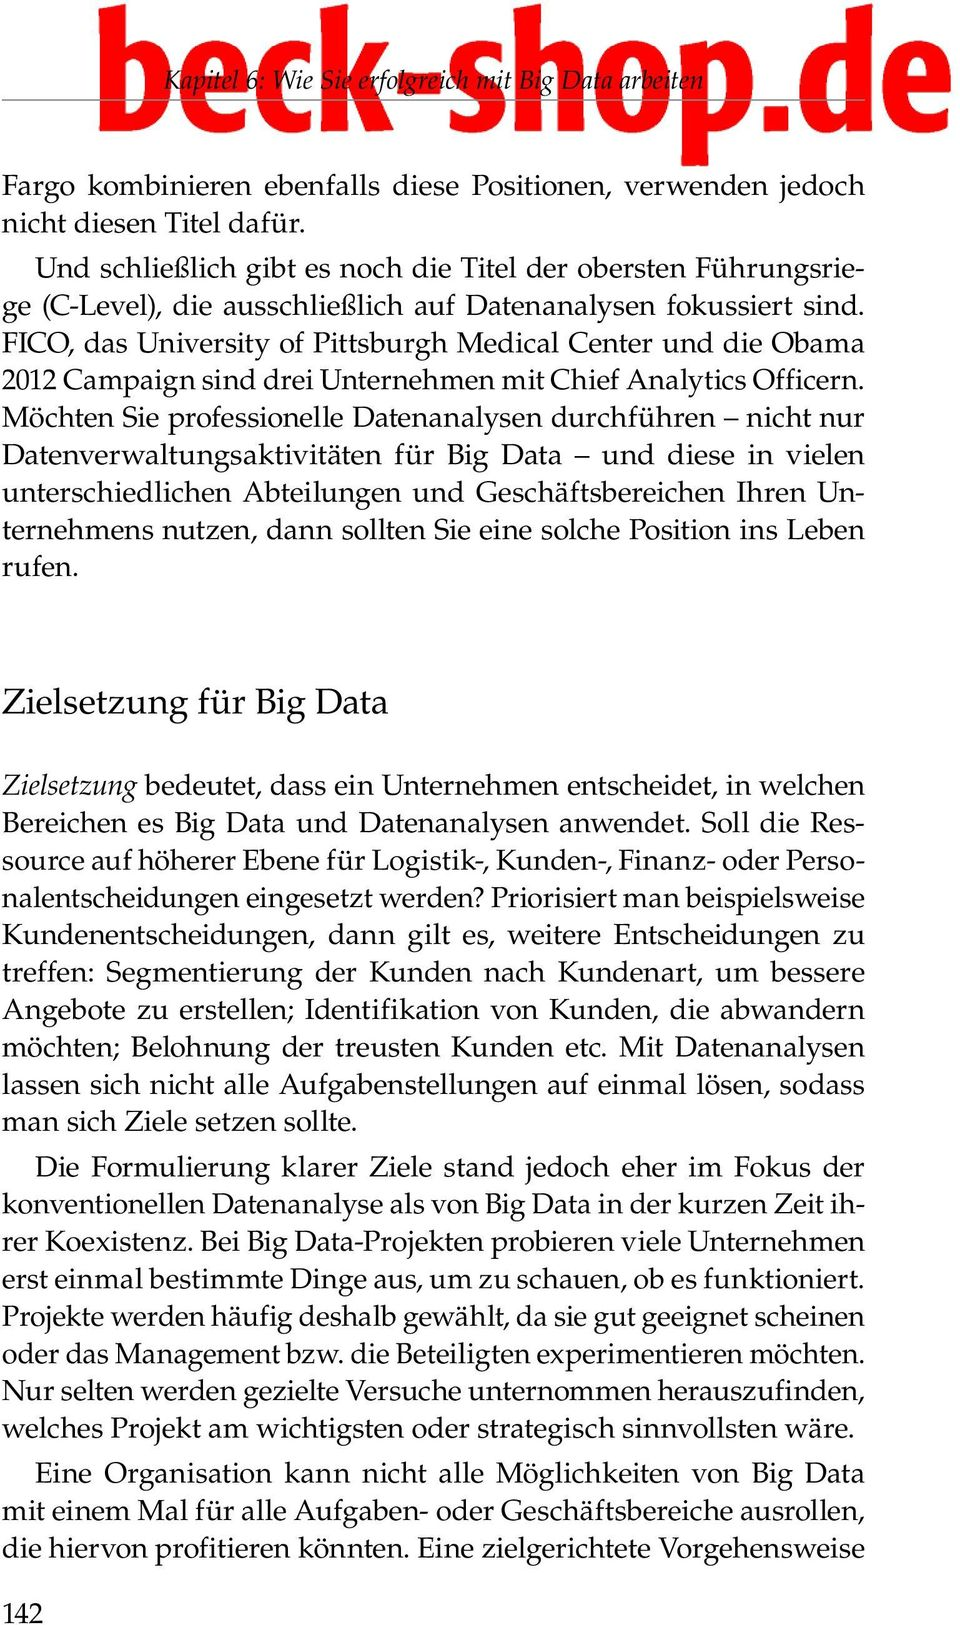 FICO, das University of Pittsburgh Medical Center und die Obama 2012 Campaign sind drei Unternehmen mit Chief Analytics Officern.